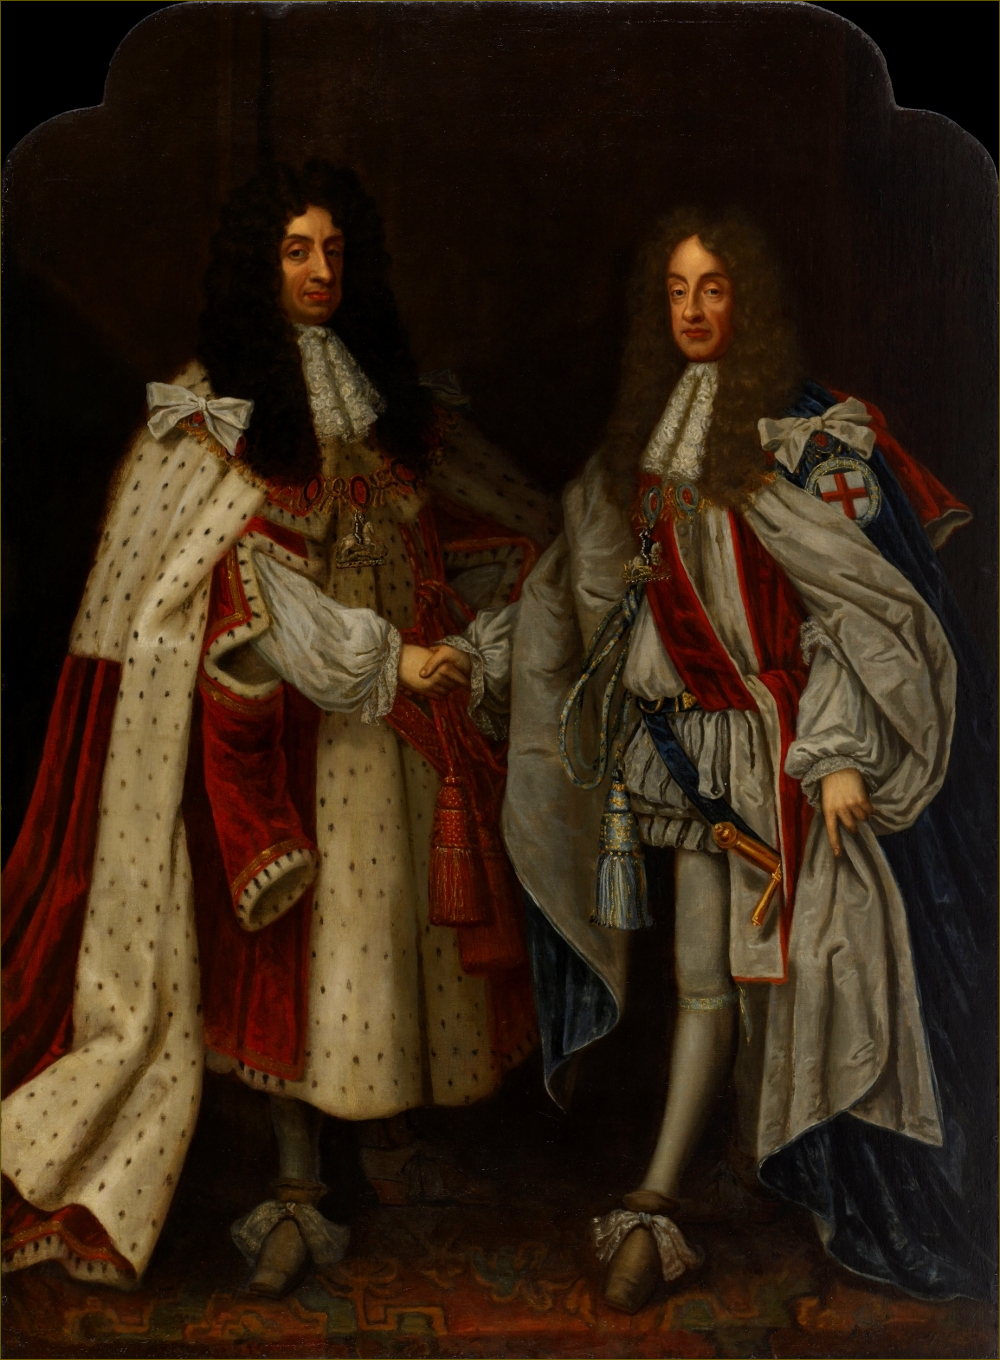 Charles II, roi d'Angleterre, avec son frère Jacques, duc d'York, futur Jacques II